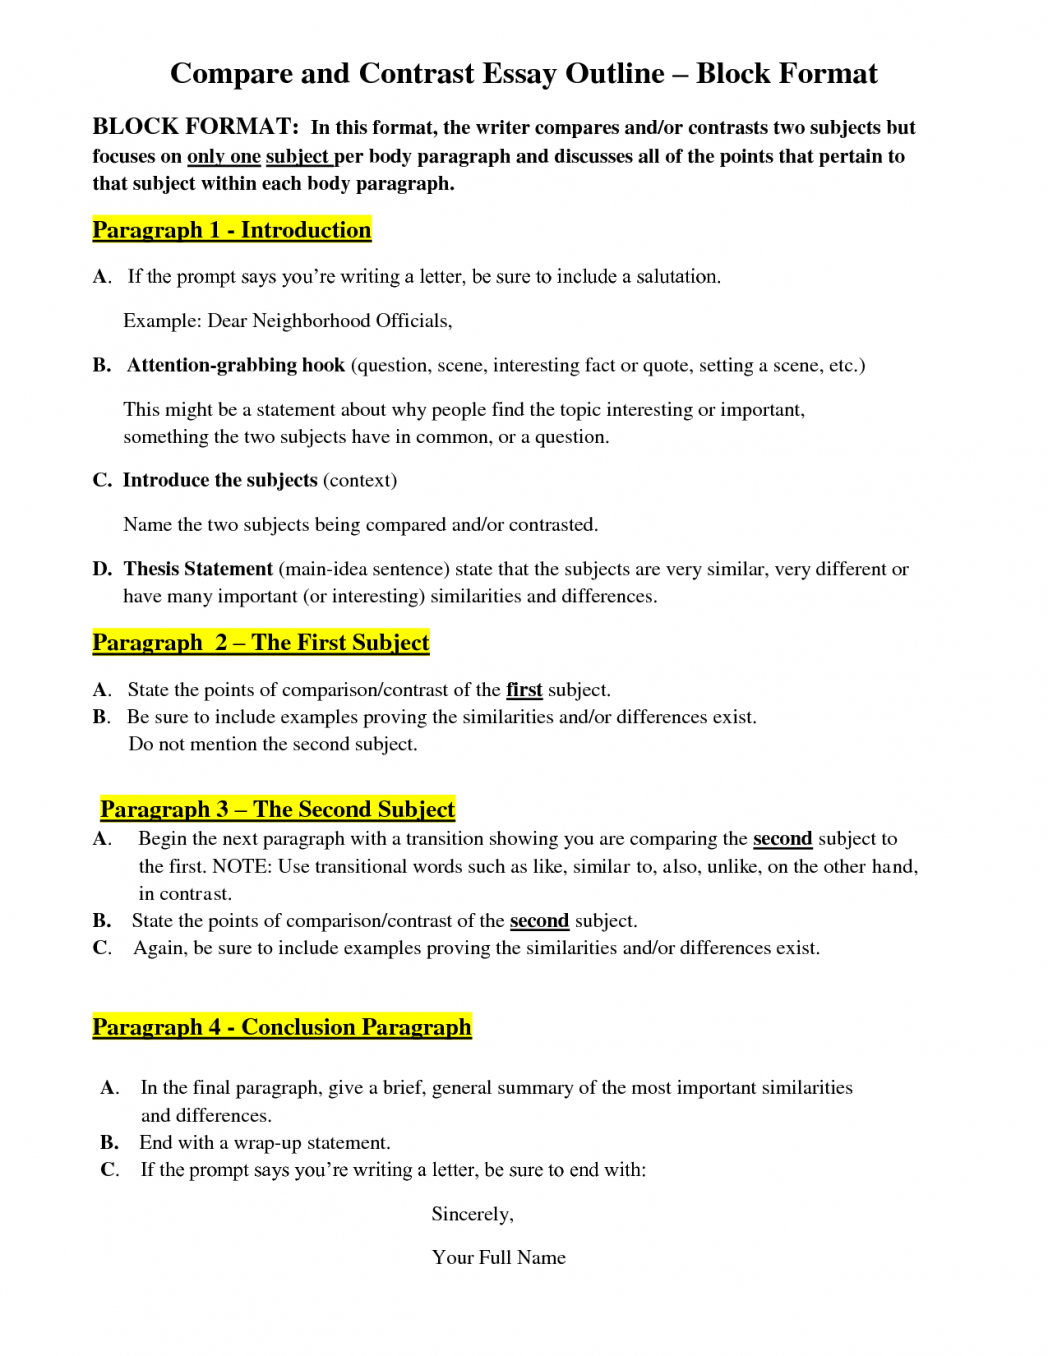 014 Essay Example Comparison And Contrast Examples Compare Introduction How To Write College Level Outline Block Frightening Point-by-point Toefl Pdf Full